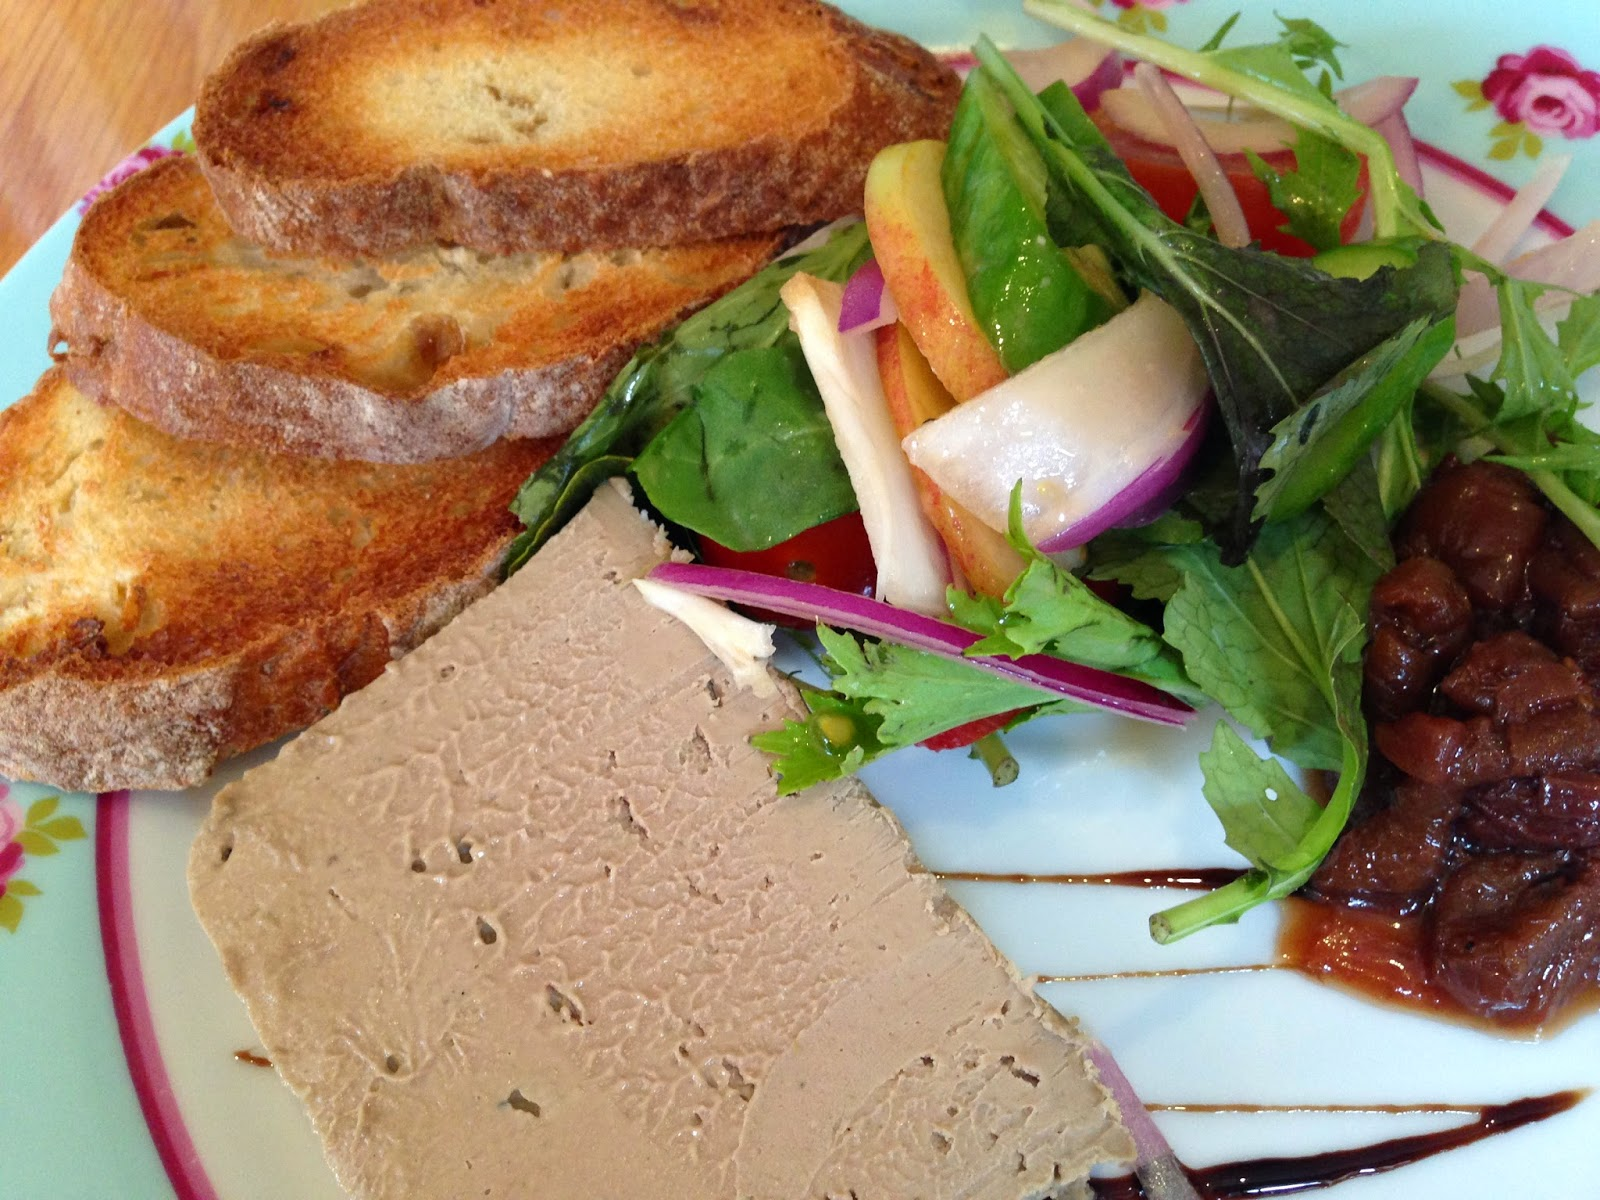 Chicken liver pate at the grey lady kitchen and deli